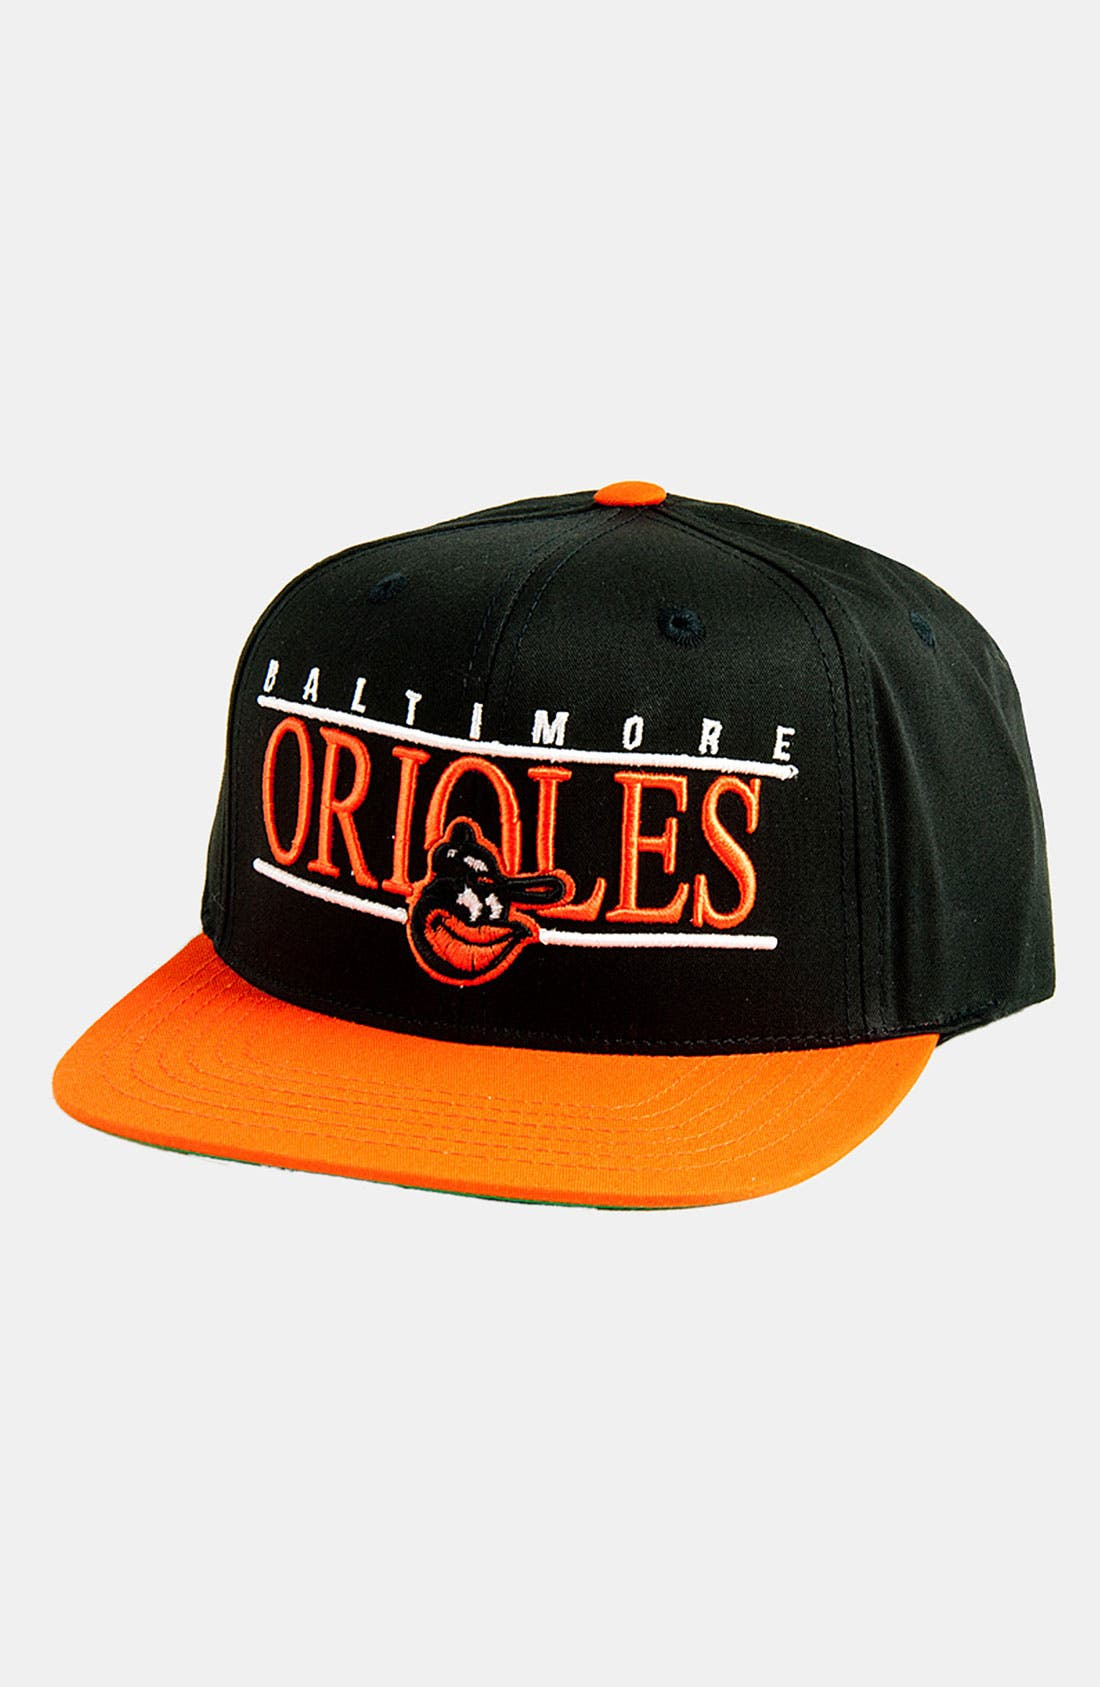 Main Image - American Needle 'Baltimore Orioles - Nineties' Twill Snapback Baseball Cap